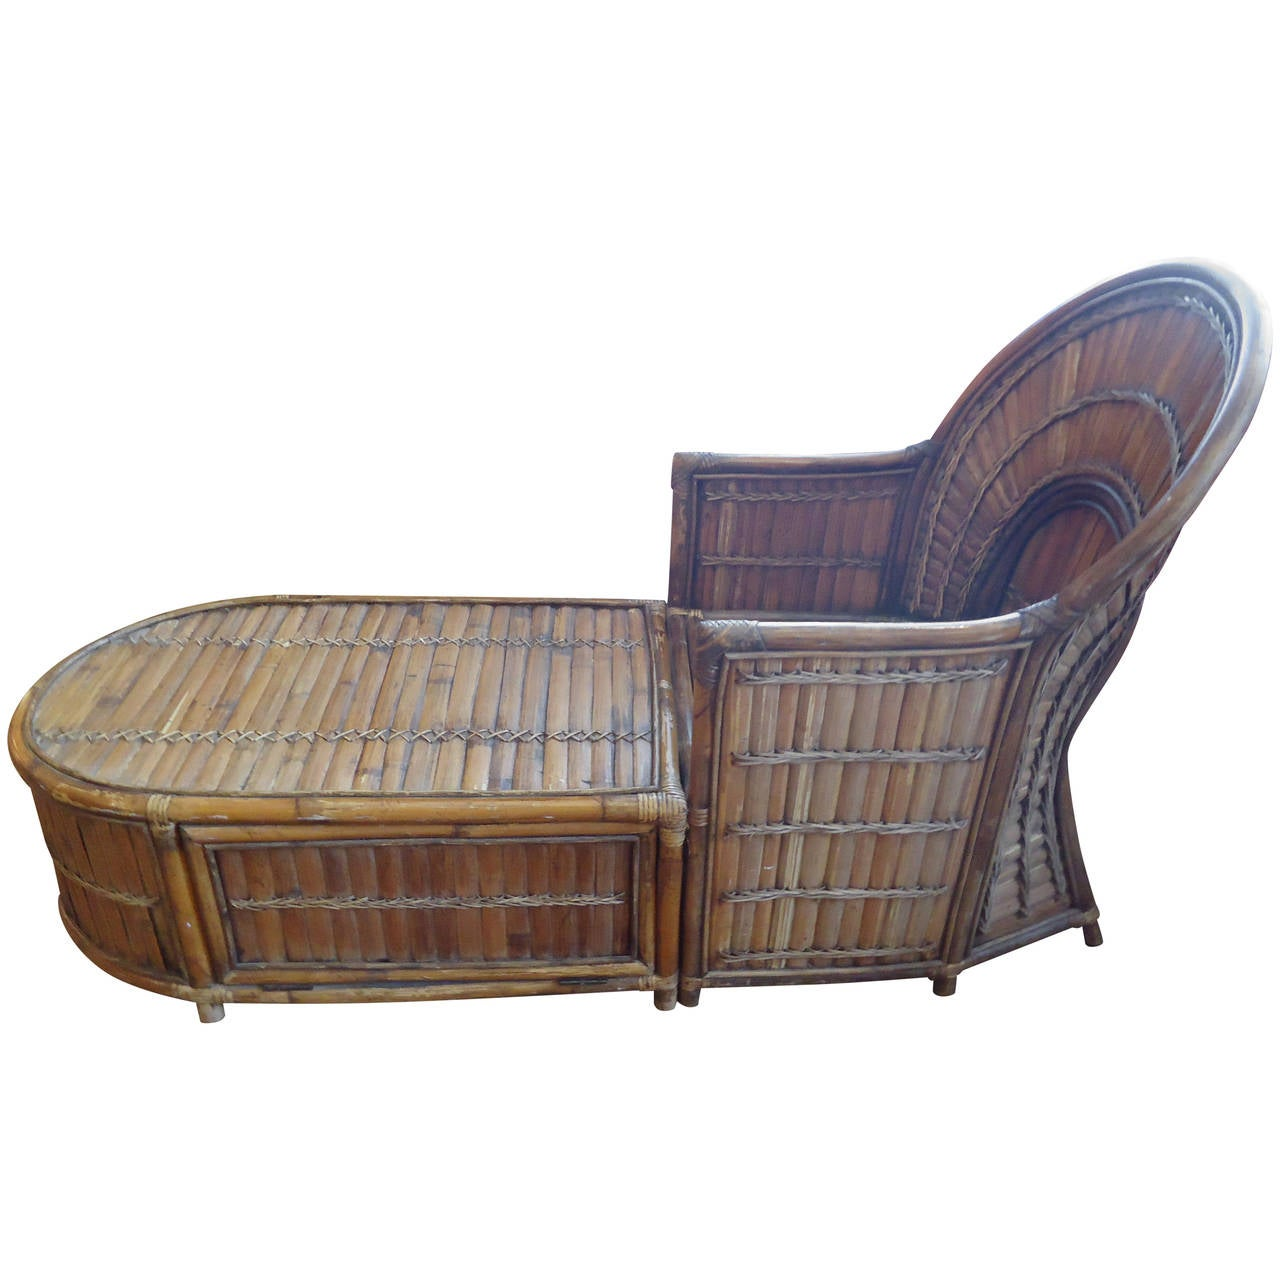 Rare bamboo art deco style chaise lounge at 1stdibs for Bamboo chaise lounge